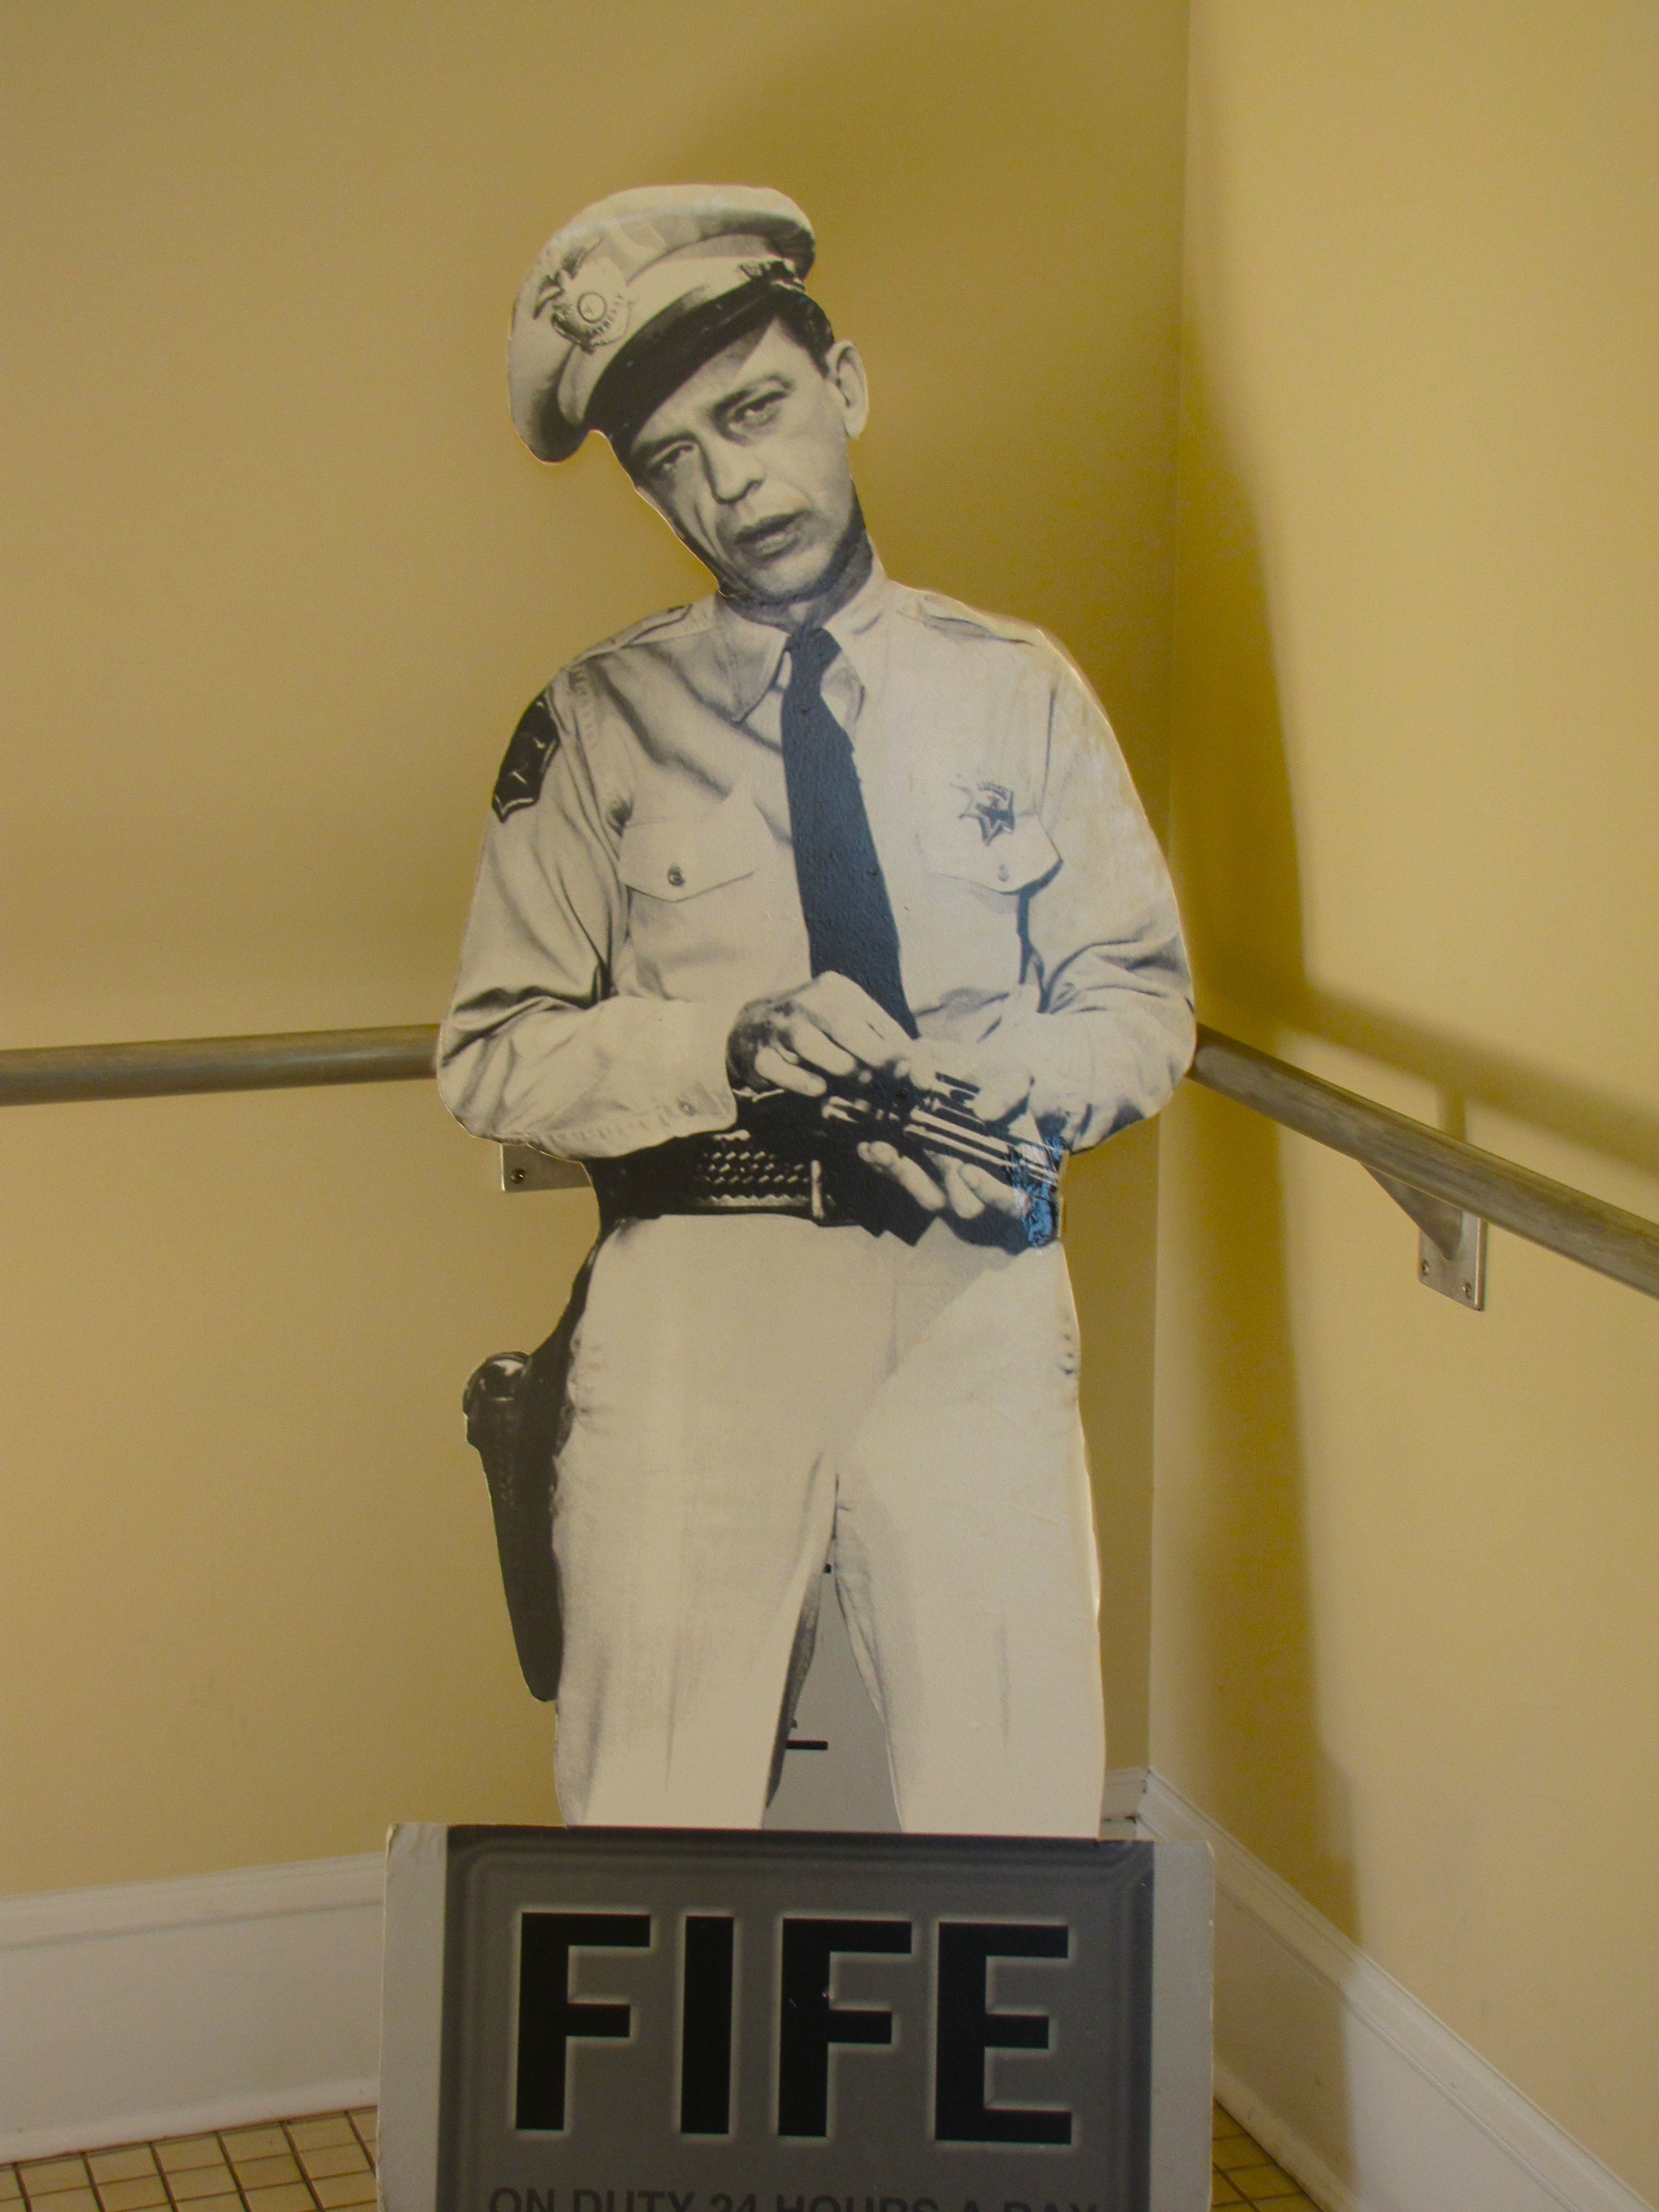 Mount Airy, NC Homeplace of Andy Griffith